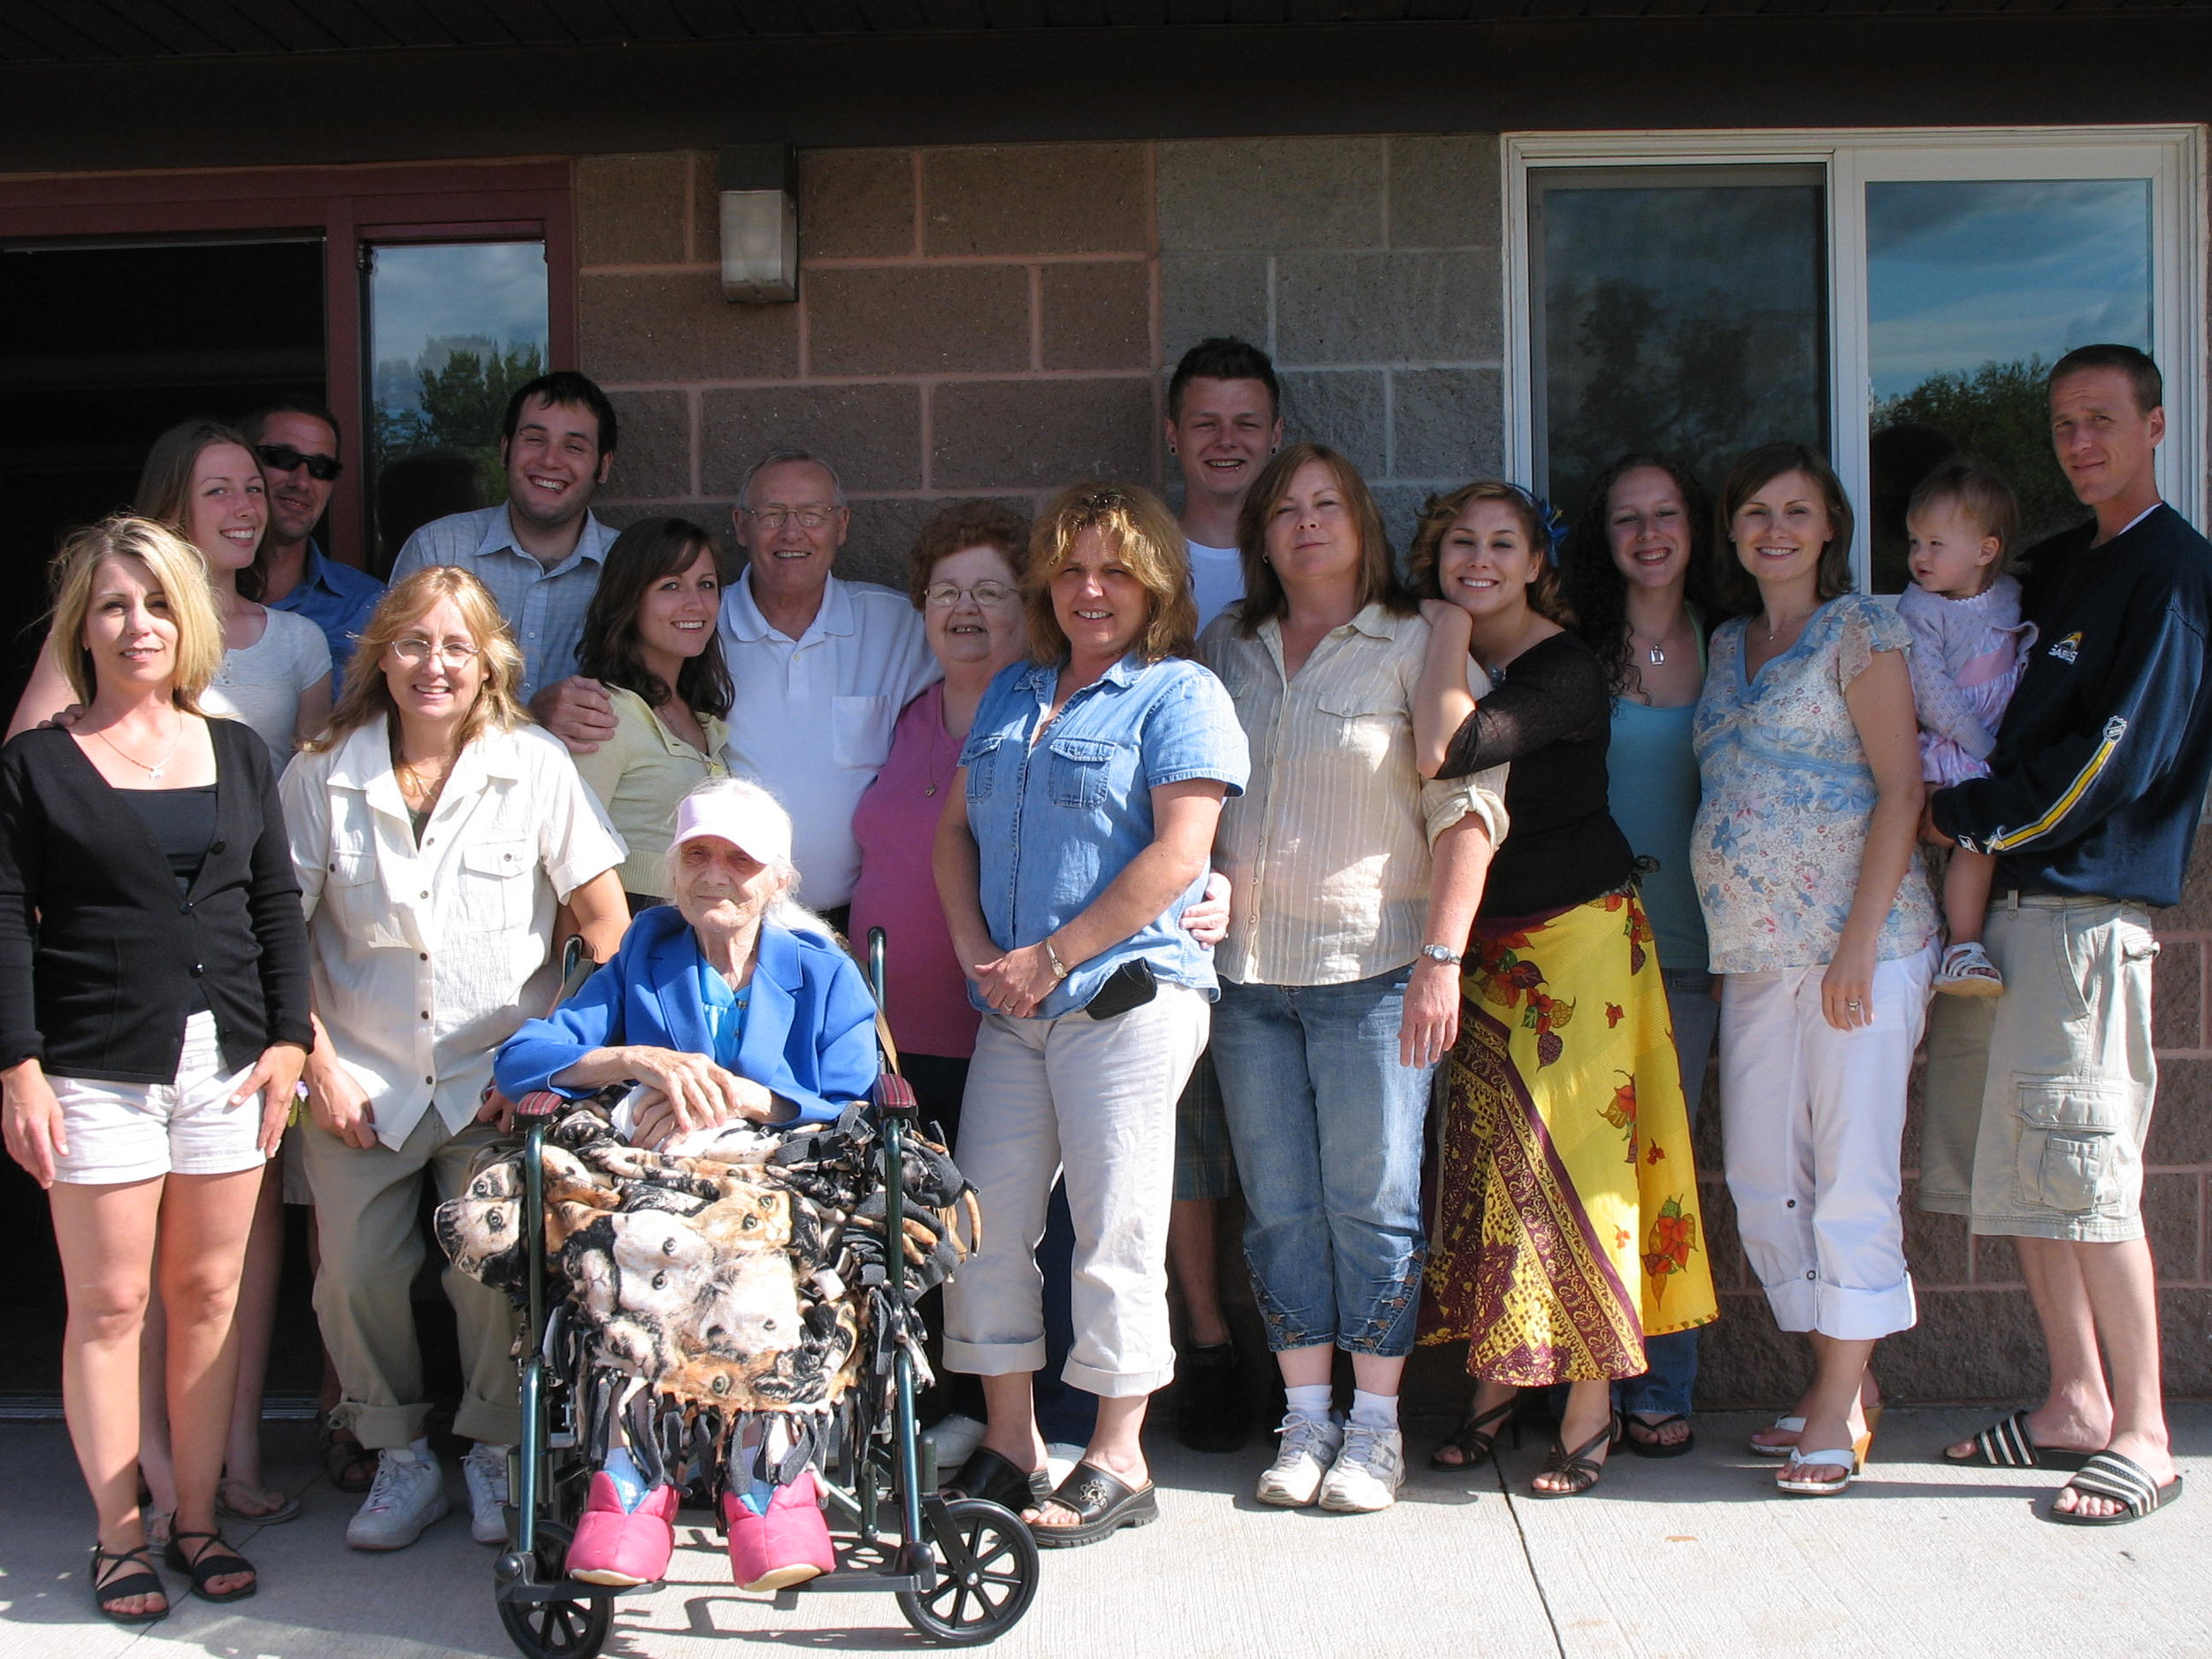 The entire McNeely clan in August 2007